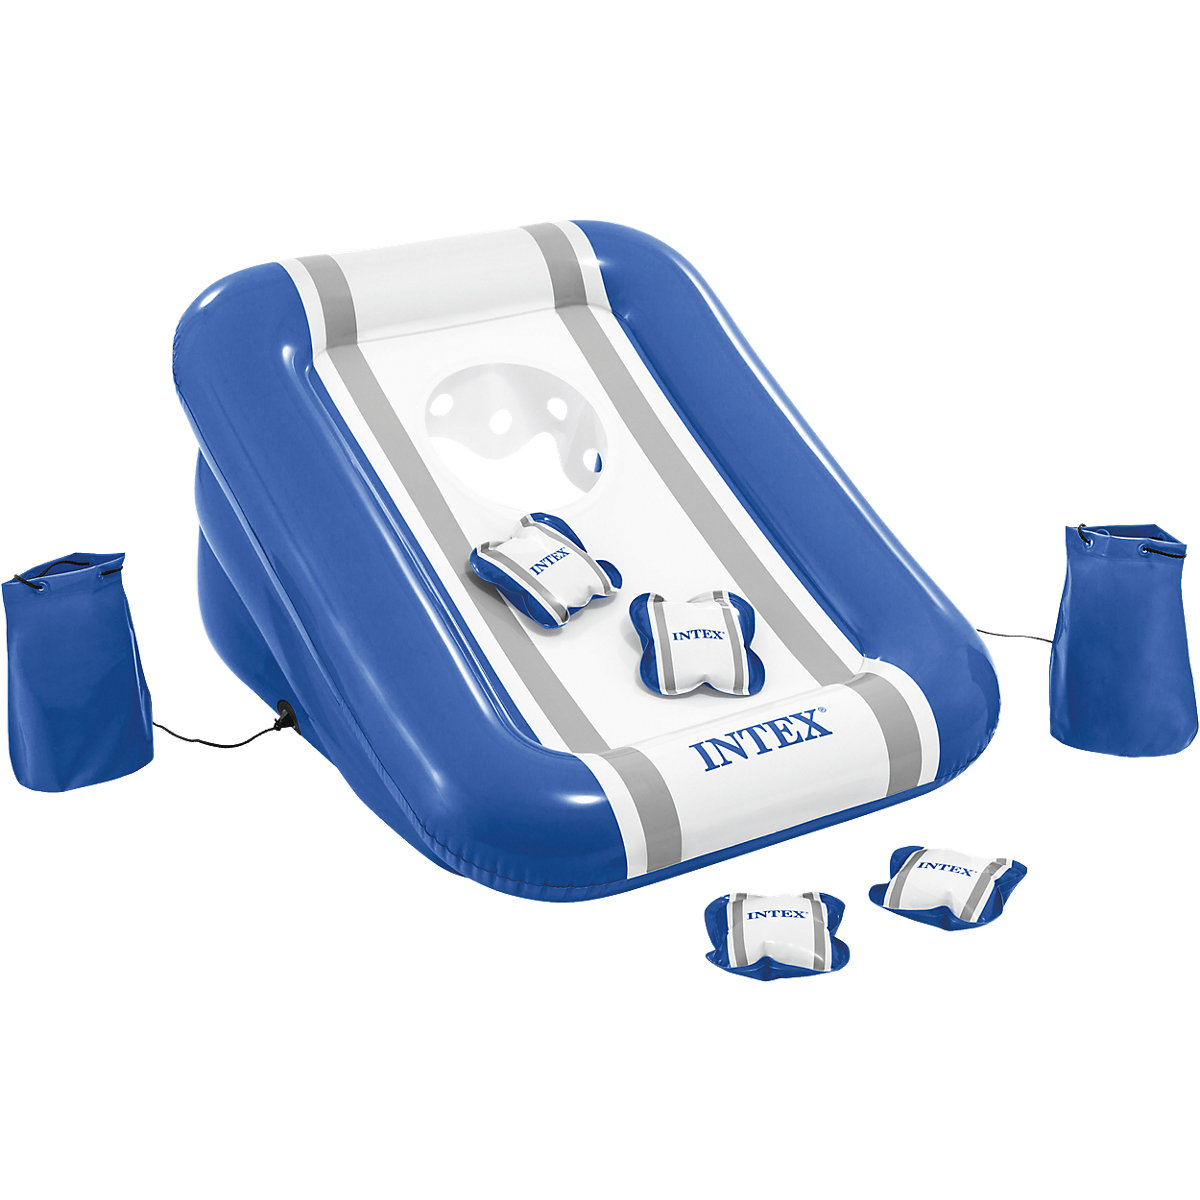 INTEX Inflatable Toys 7225931 games toy trampoline for children Kids game inflatable water game inflatable water trampoline for kids game